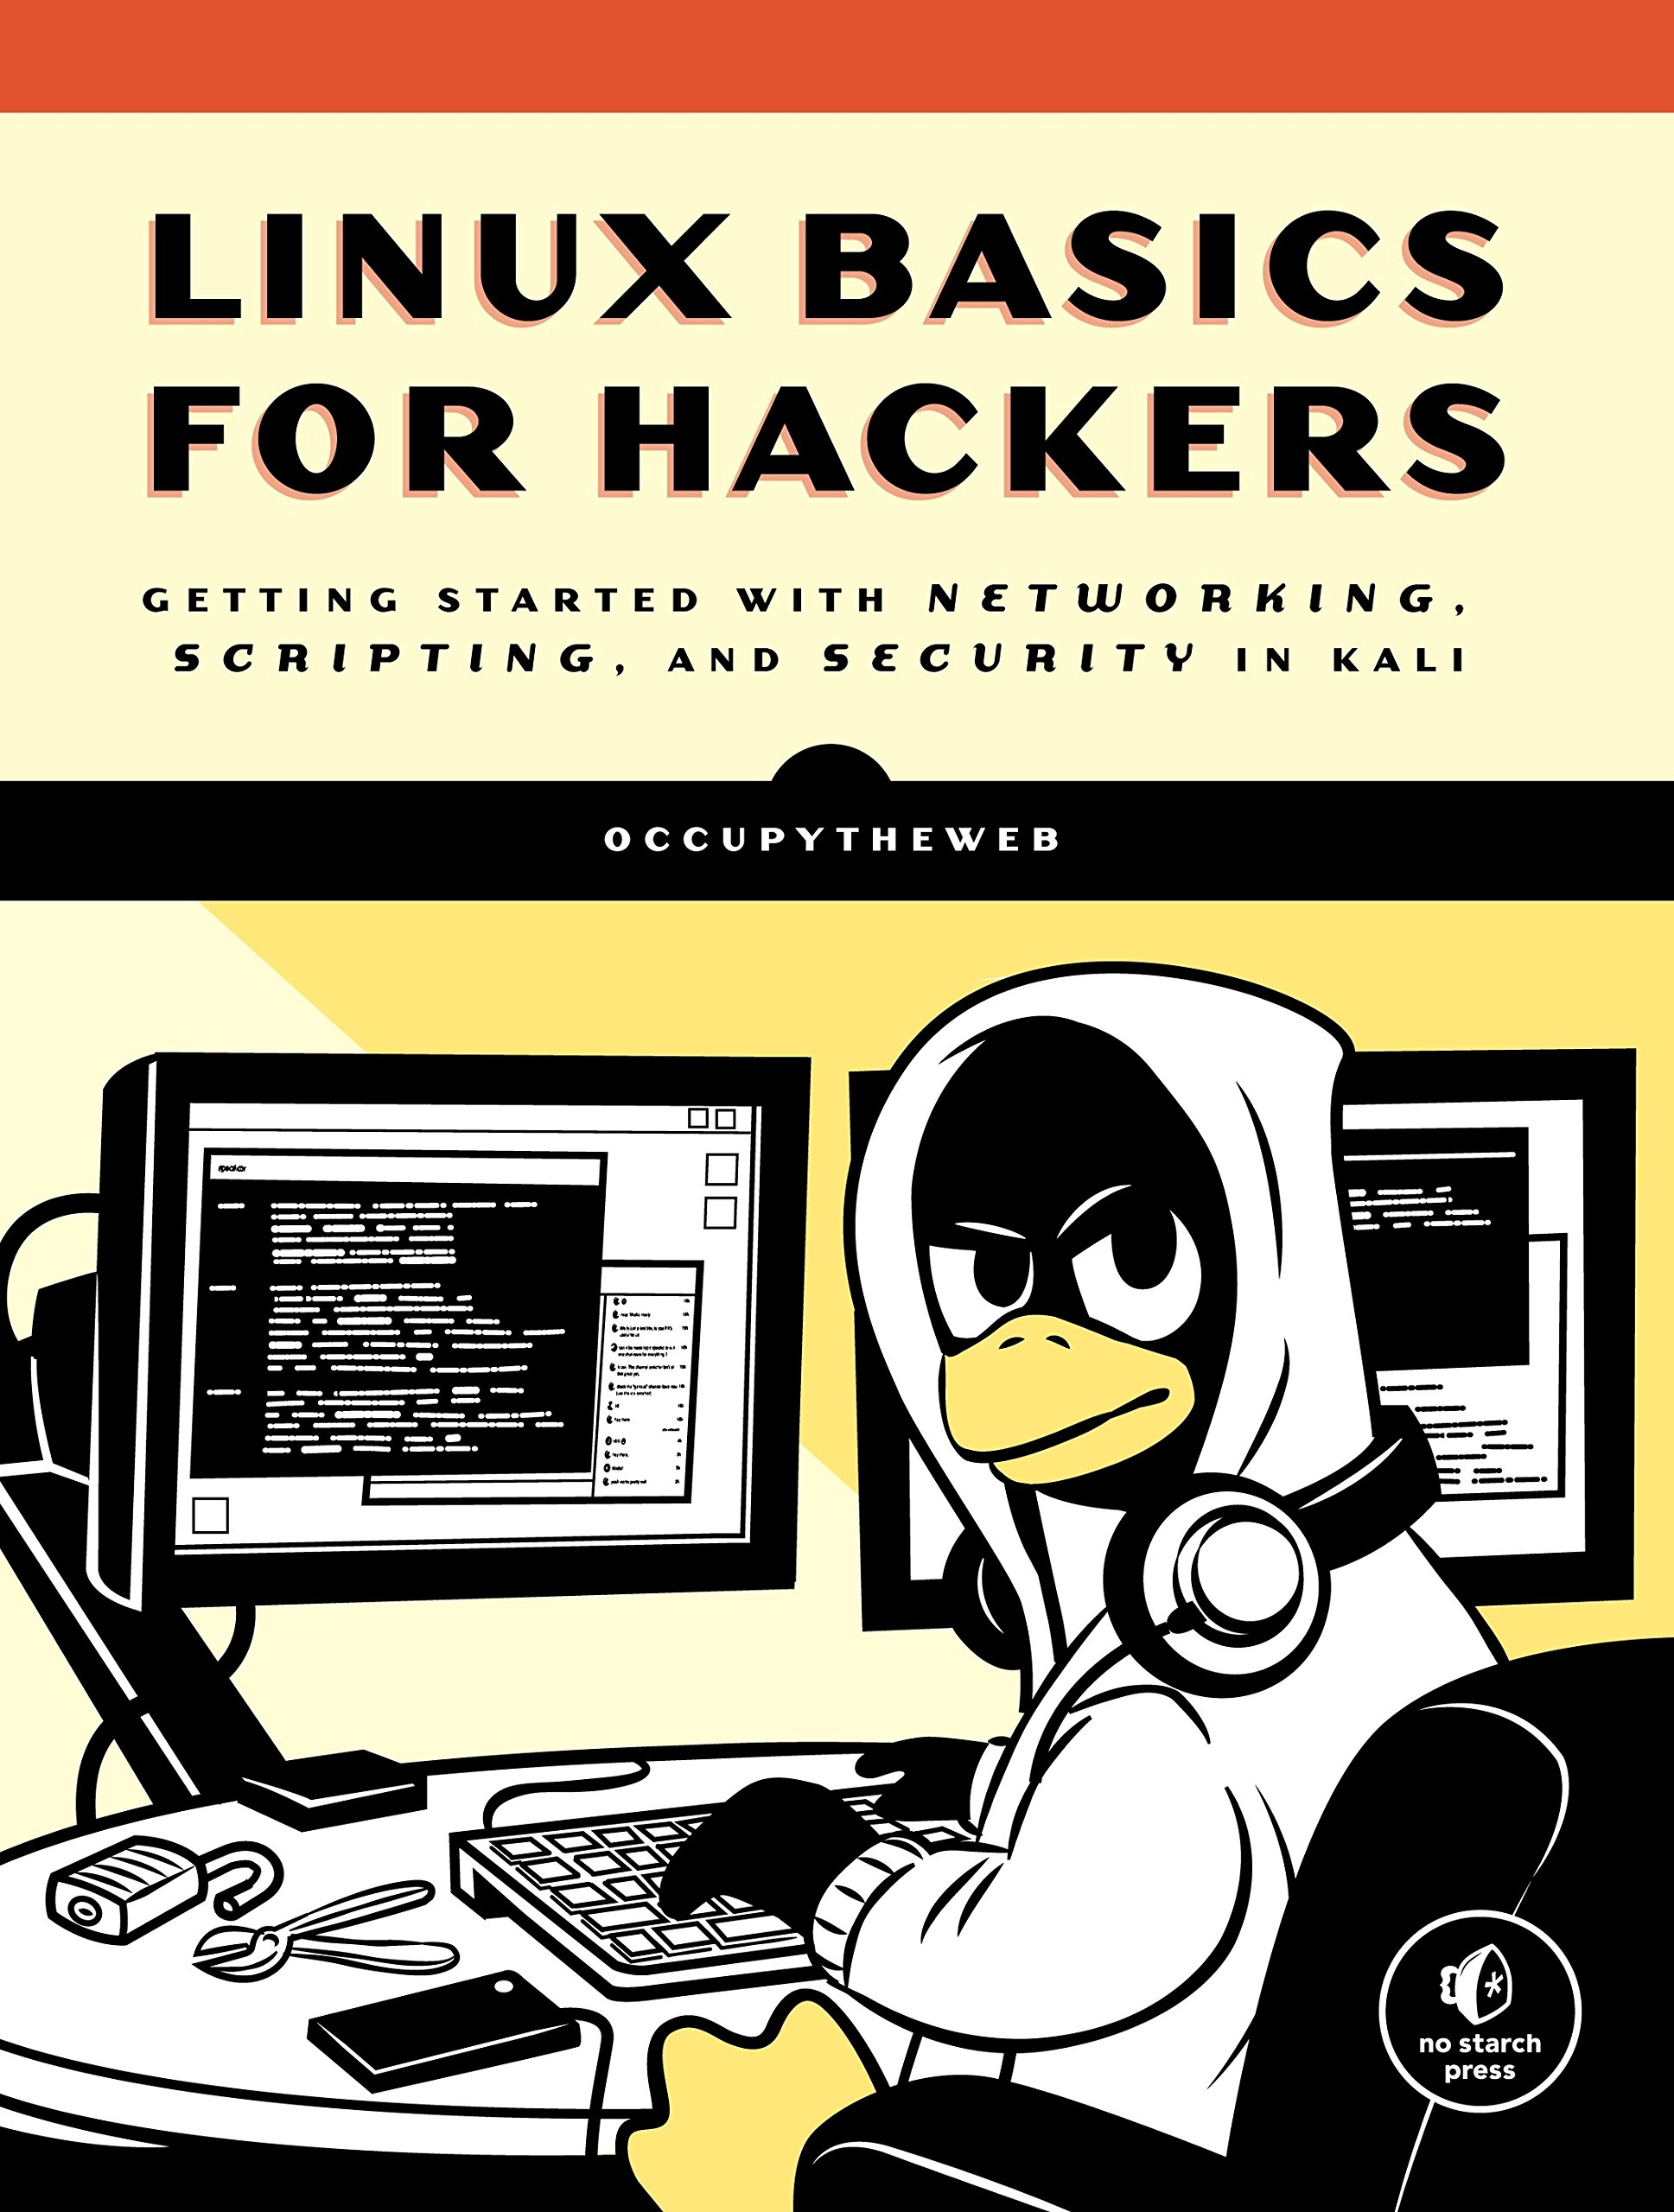 Image OfLinux Basics For Hackers: Getting Started With Networking, Scripting, And Security In Kali